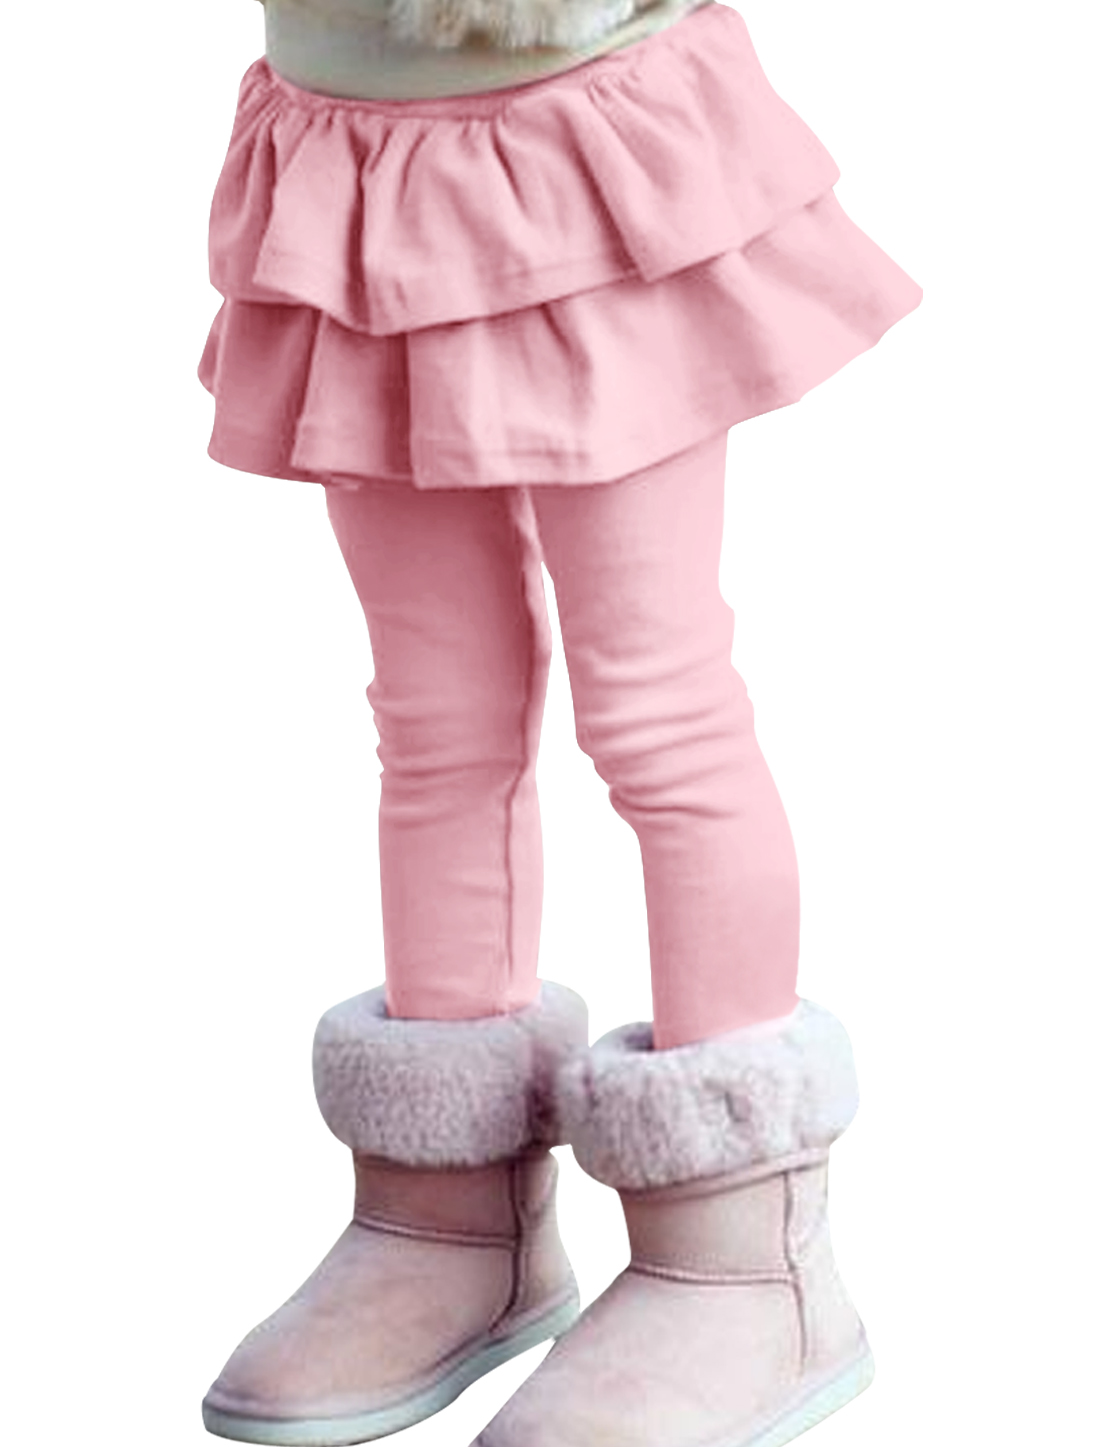 Girls Flouncing Hem Autumn Wearing Pants Pink 2T